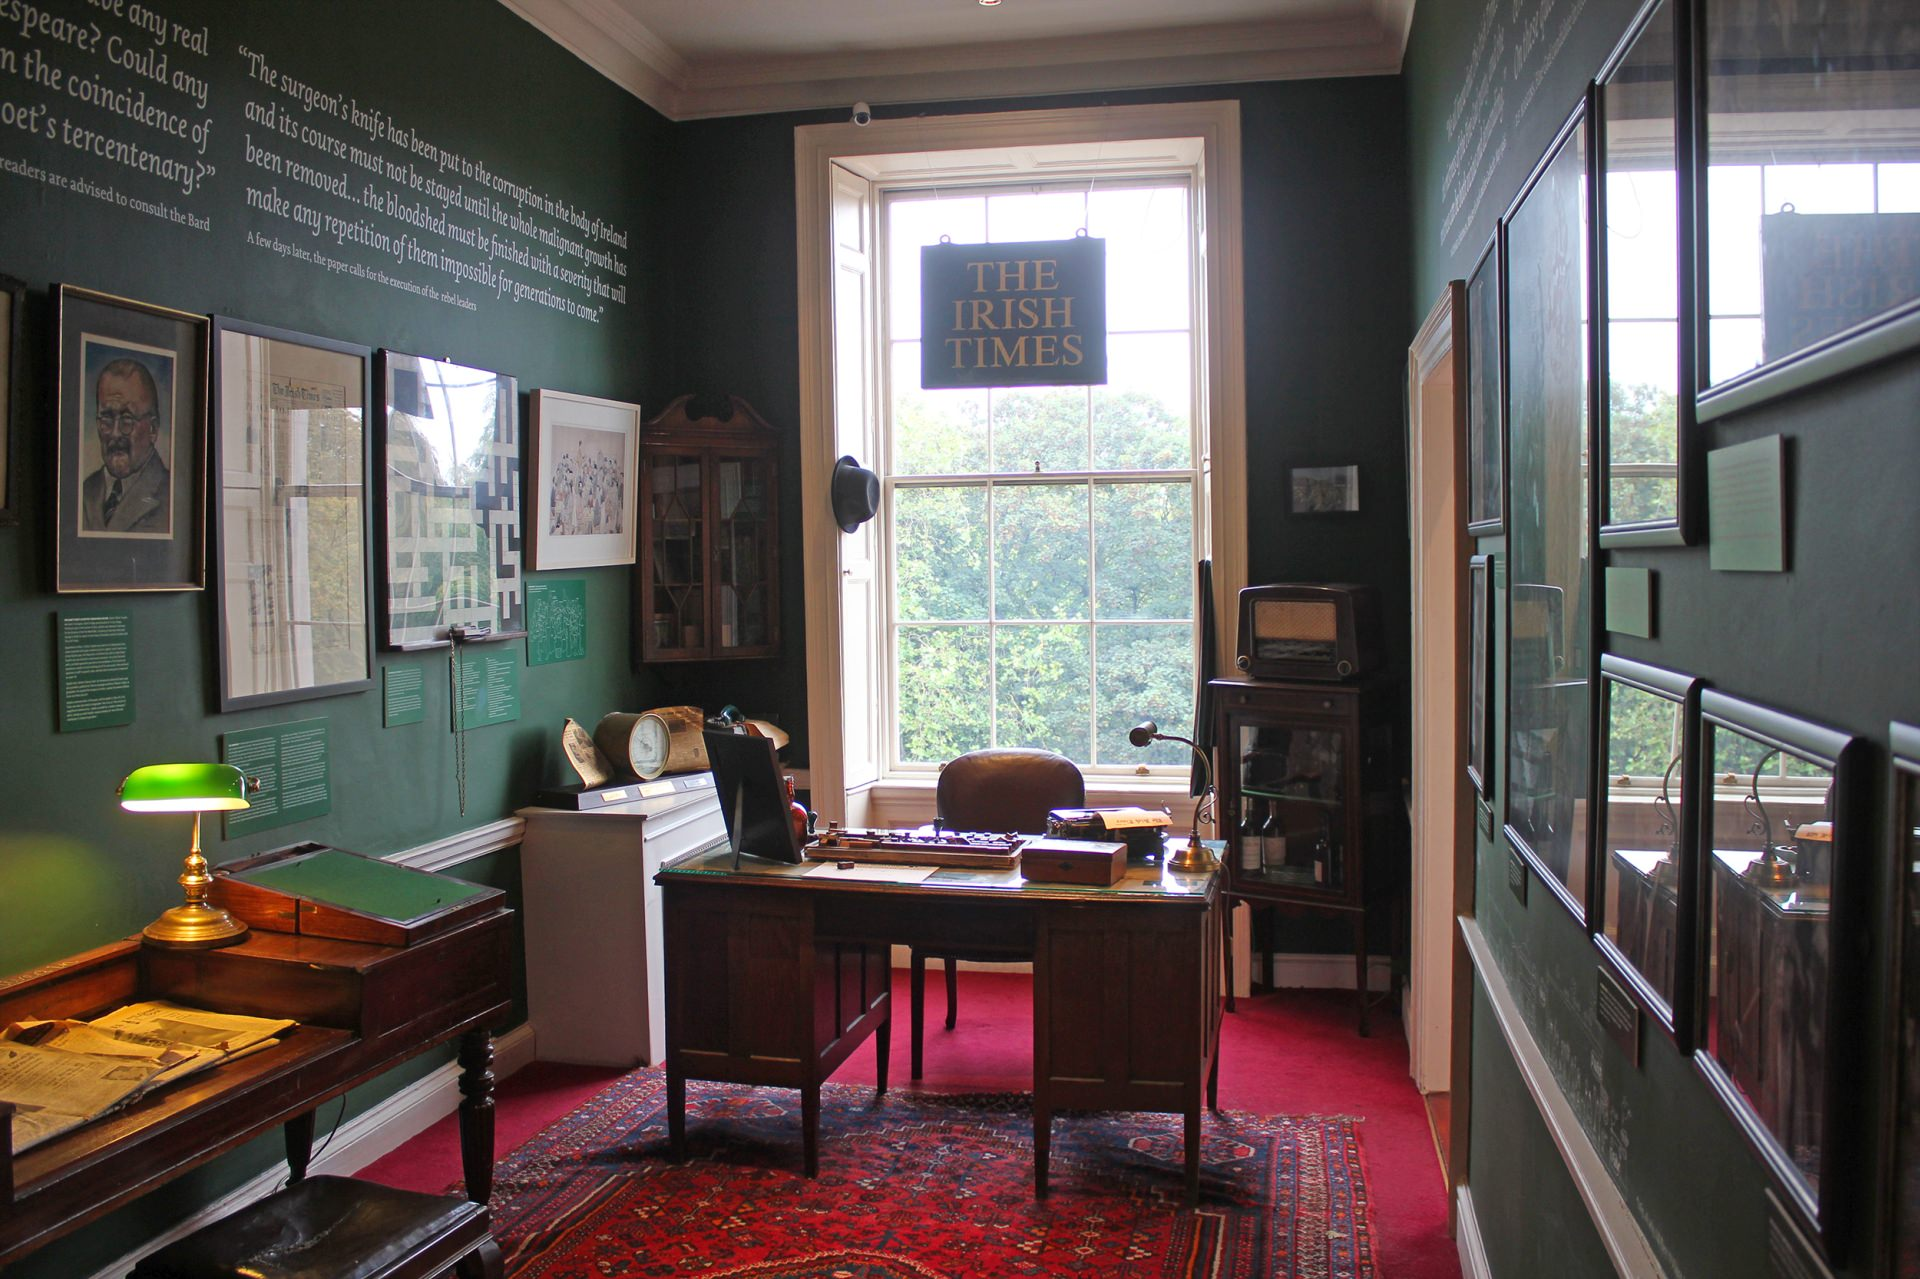 little museum irish times raum